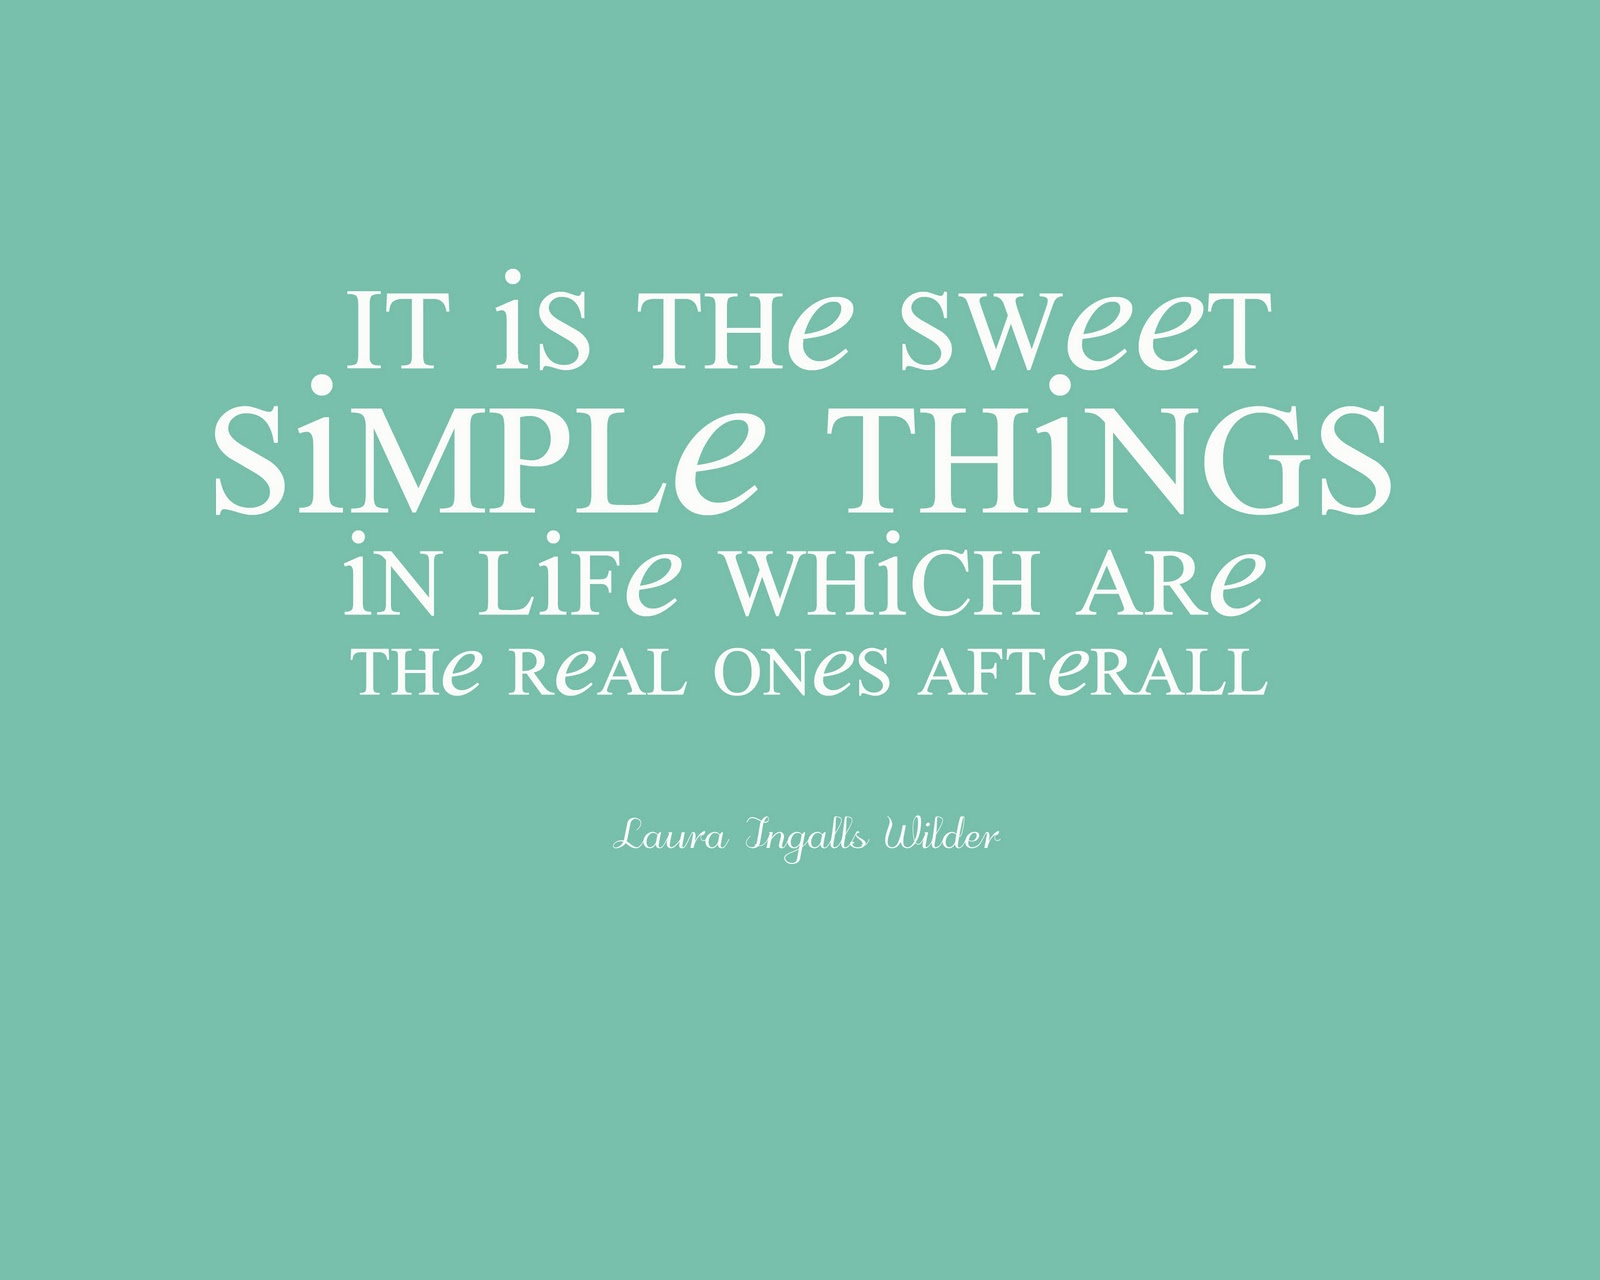 Simple Beauty Quotes Tumblr: Beauty In Simplicity Quotes. QuotesGram